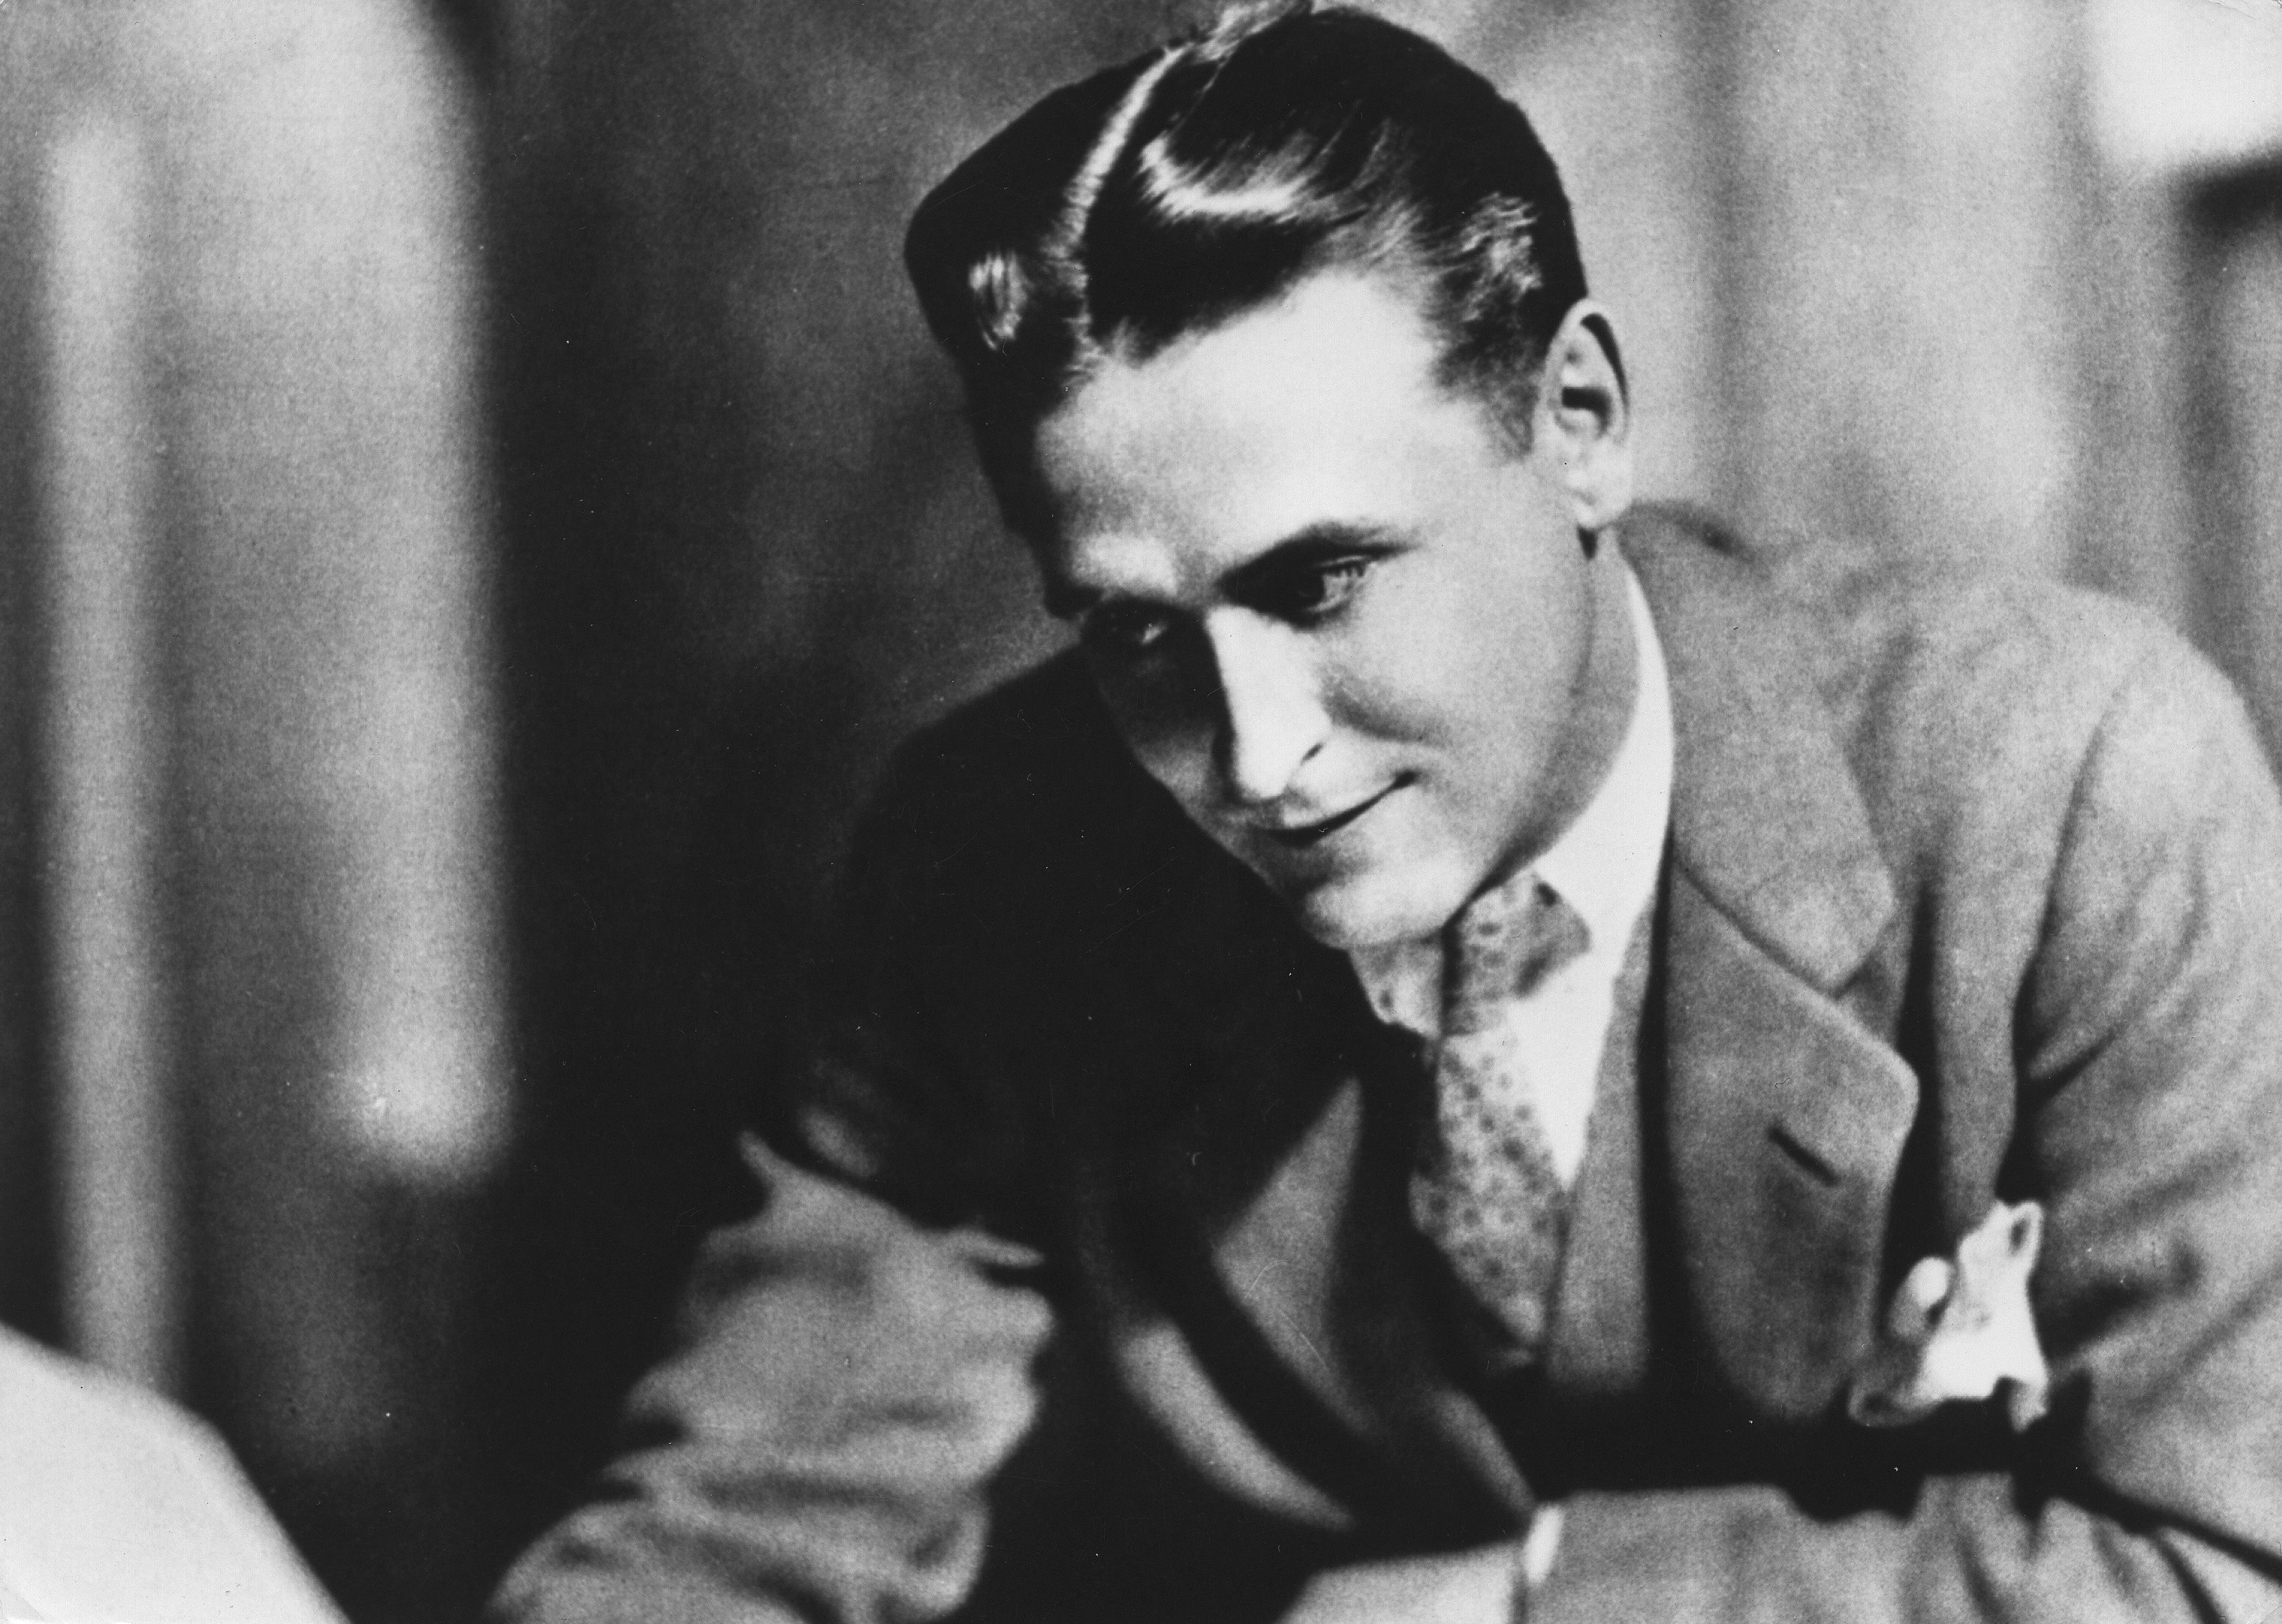 f scott fitzgerald essay american literature summer reading and  f scott fitzgerald facts things you didn t know about f scott f scott fitzgerald facts